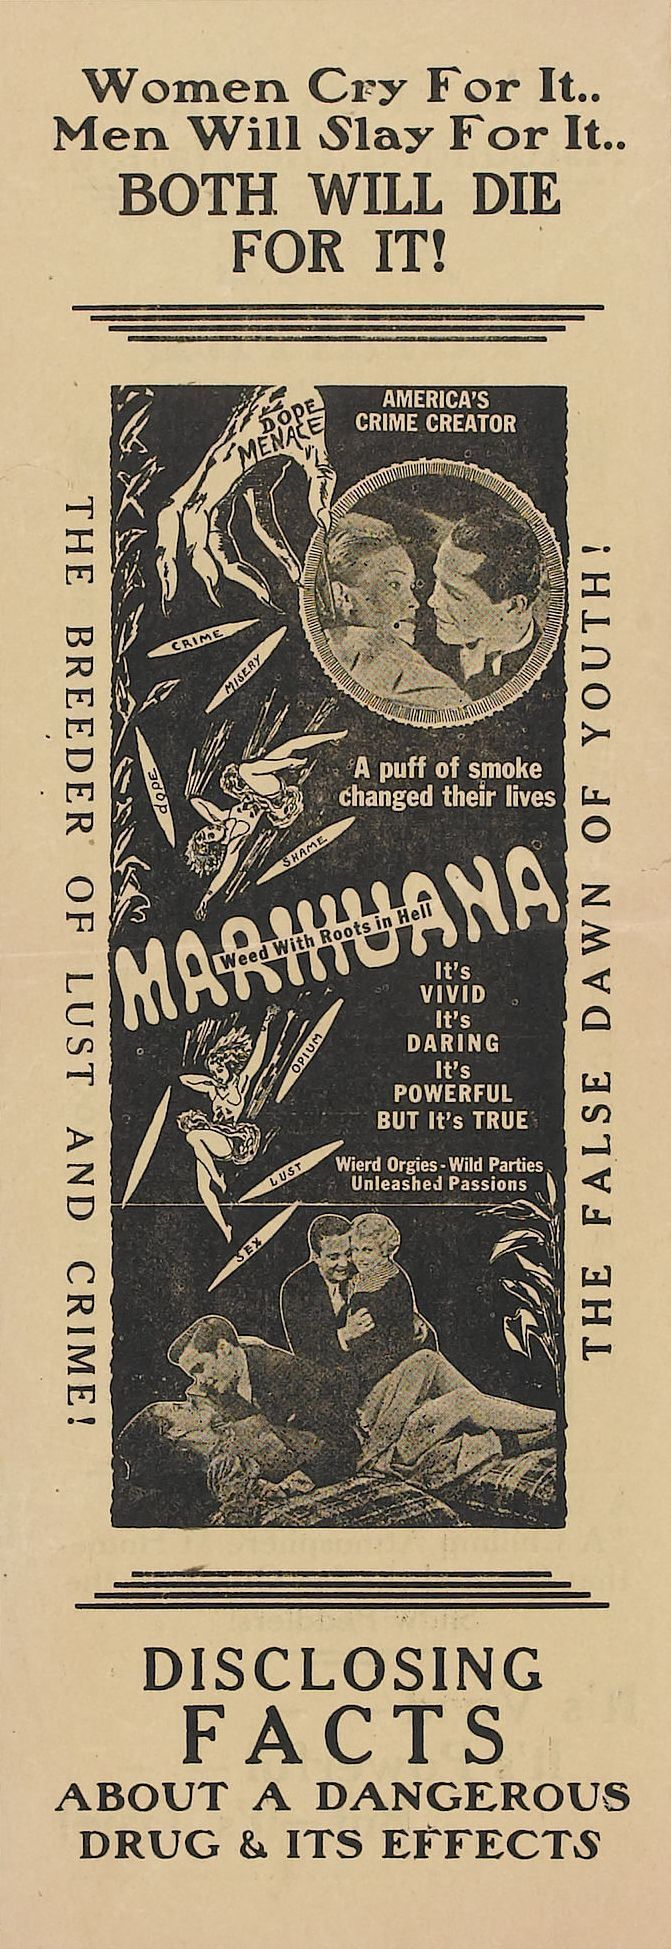 Vintage antimarijuana ad. Marijuana is far less dangerous than alcohol, tobacco, prescription drugs, cocaine, meth, etc.Make easy, small mints for safe pain relief or enjoyment! MARIJUANA - Guide to Buying, Growing, Harvesting, and Making Medical Marijuana Oil and Delicious Candies to Treat Pain and Ailments by Mary Bendis, Second Edition. Just $2.99 for great e-book! muzzymemo.com